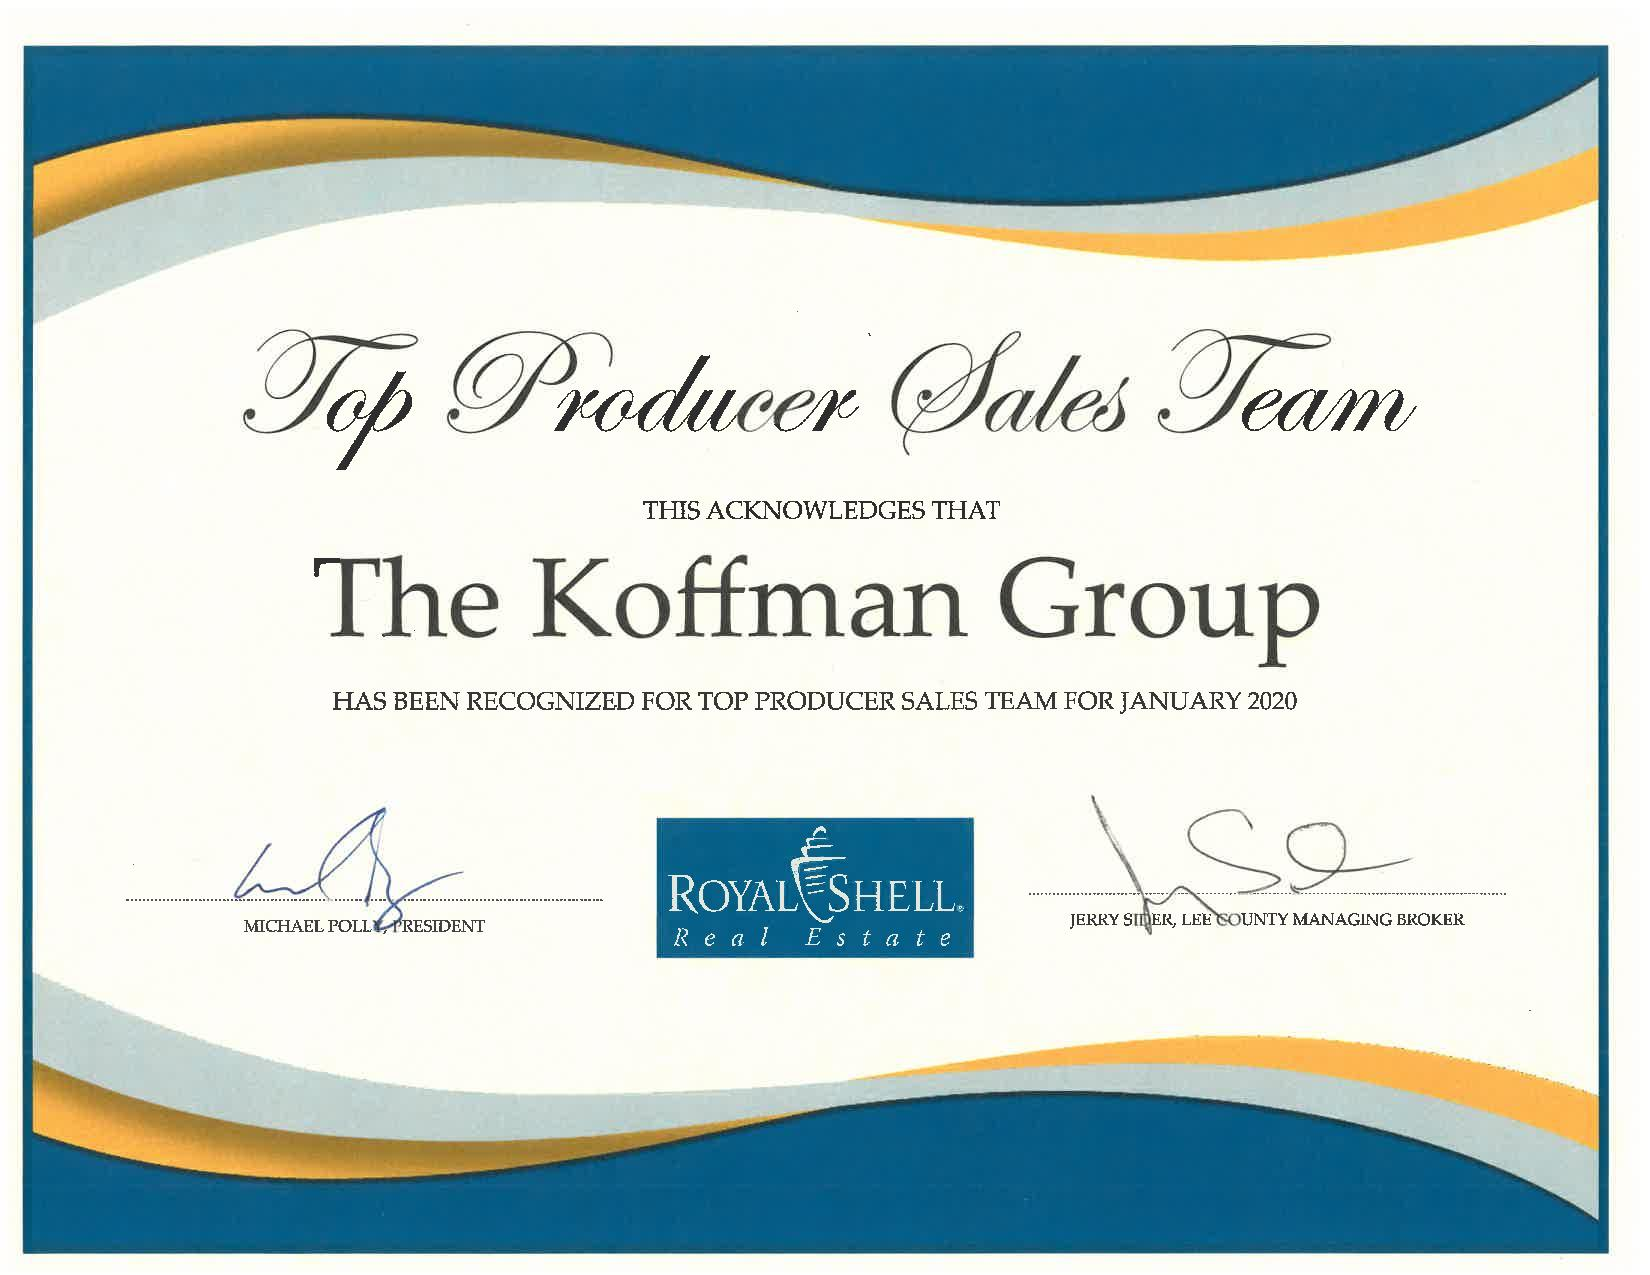 Koffman Group January 2020 Award for Top Producing Sales Team in the Cape Coral real estate office